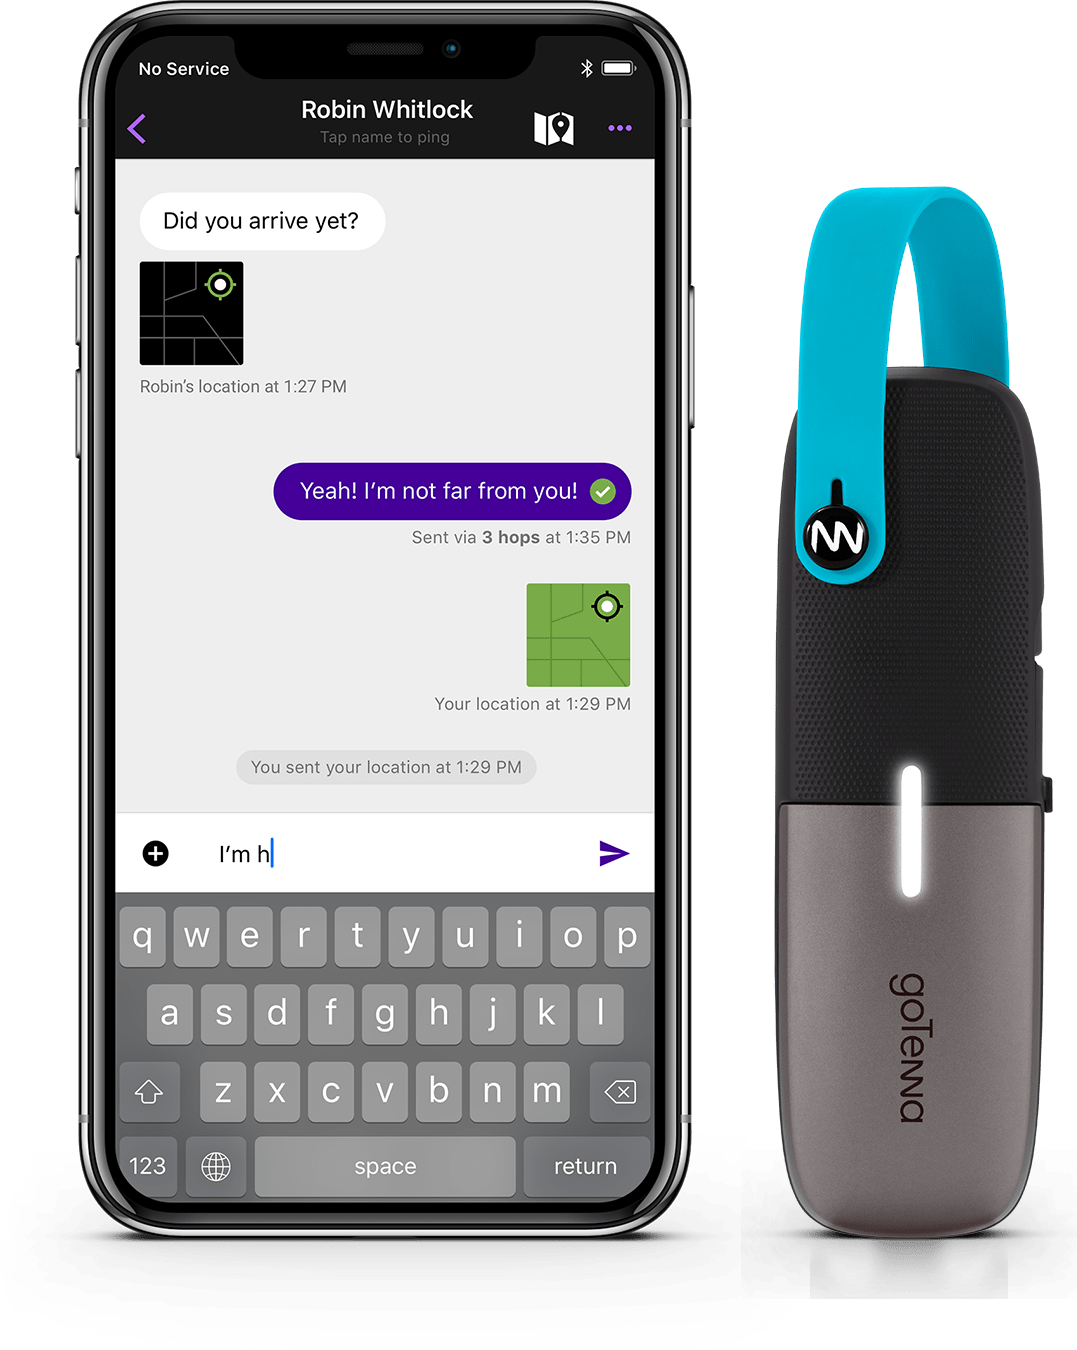 gotenna app functionality